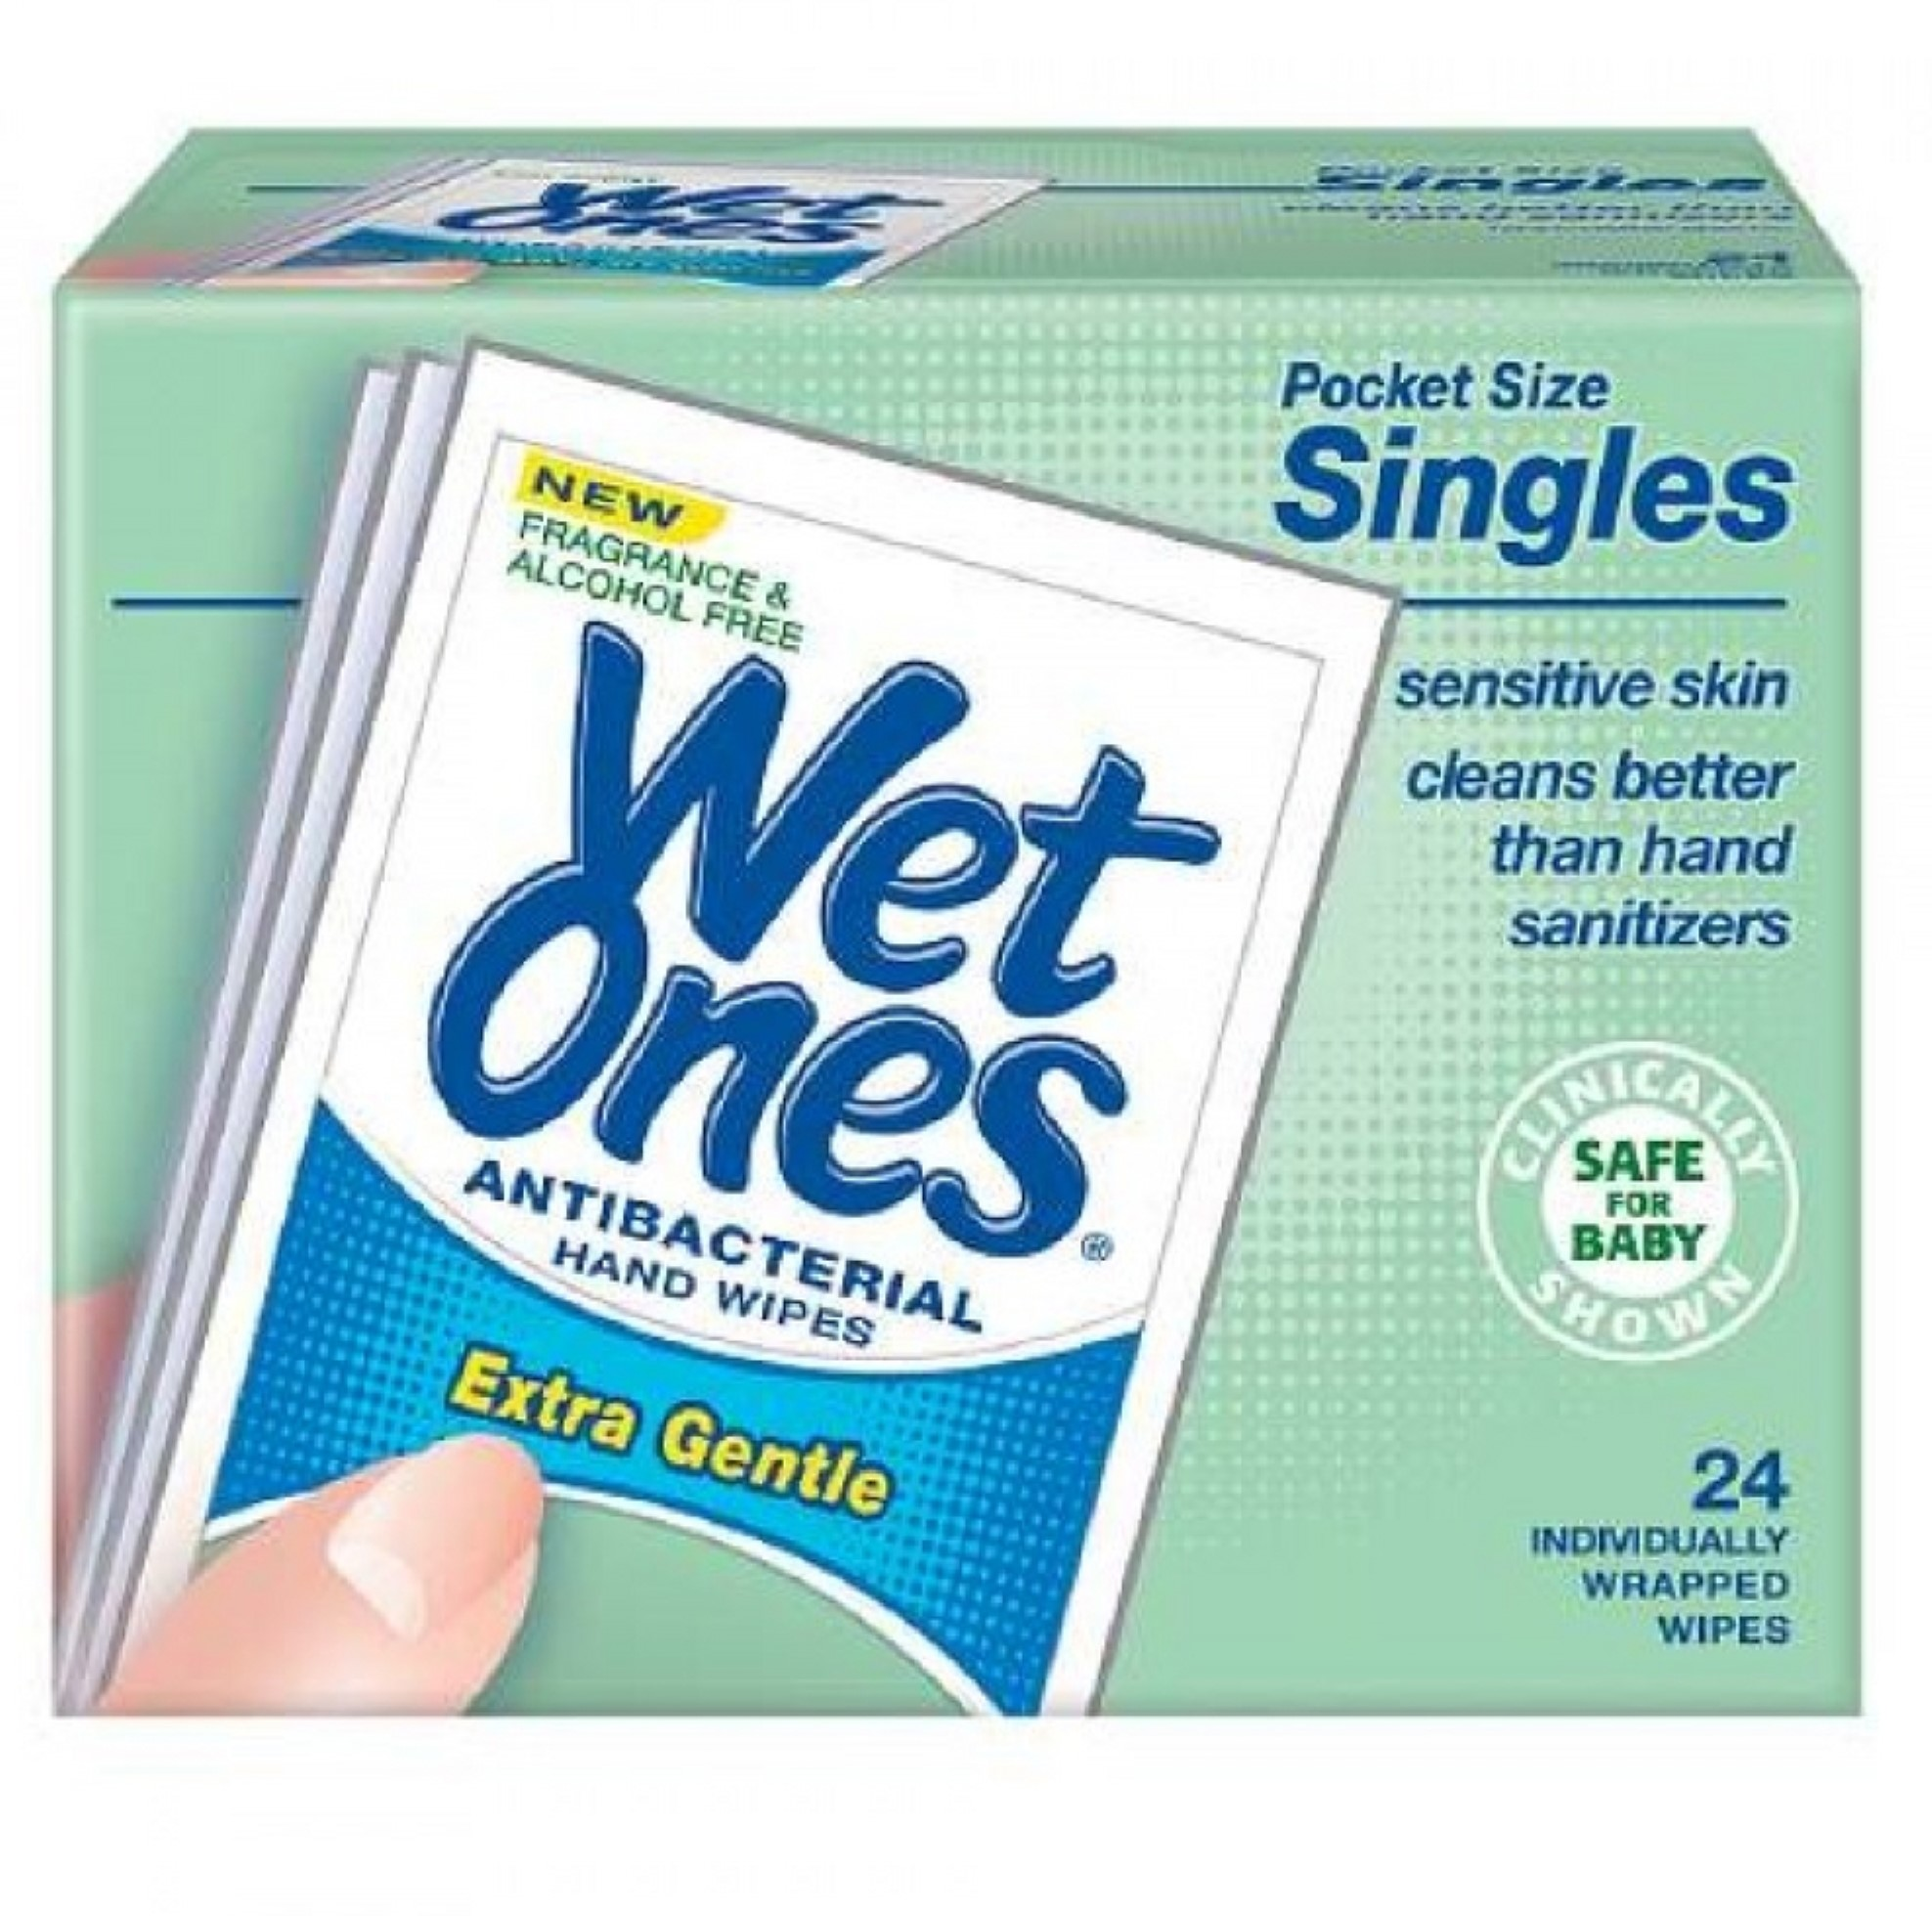 4 Pack - WET ONES Sensitive Skin Hand Wipes, Singles Extra Gentle Fragrance & Alcohol Free  24 ea